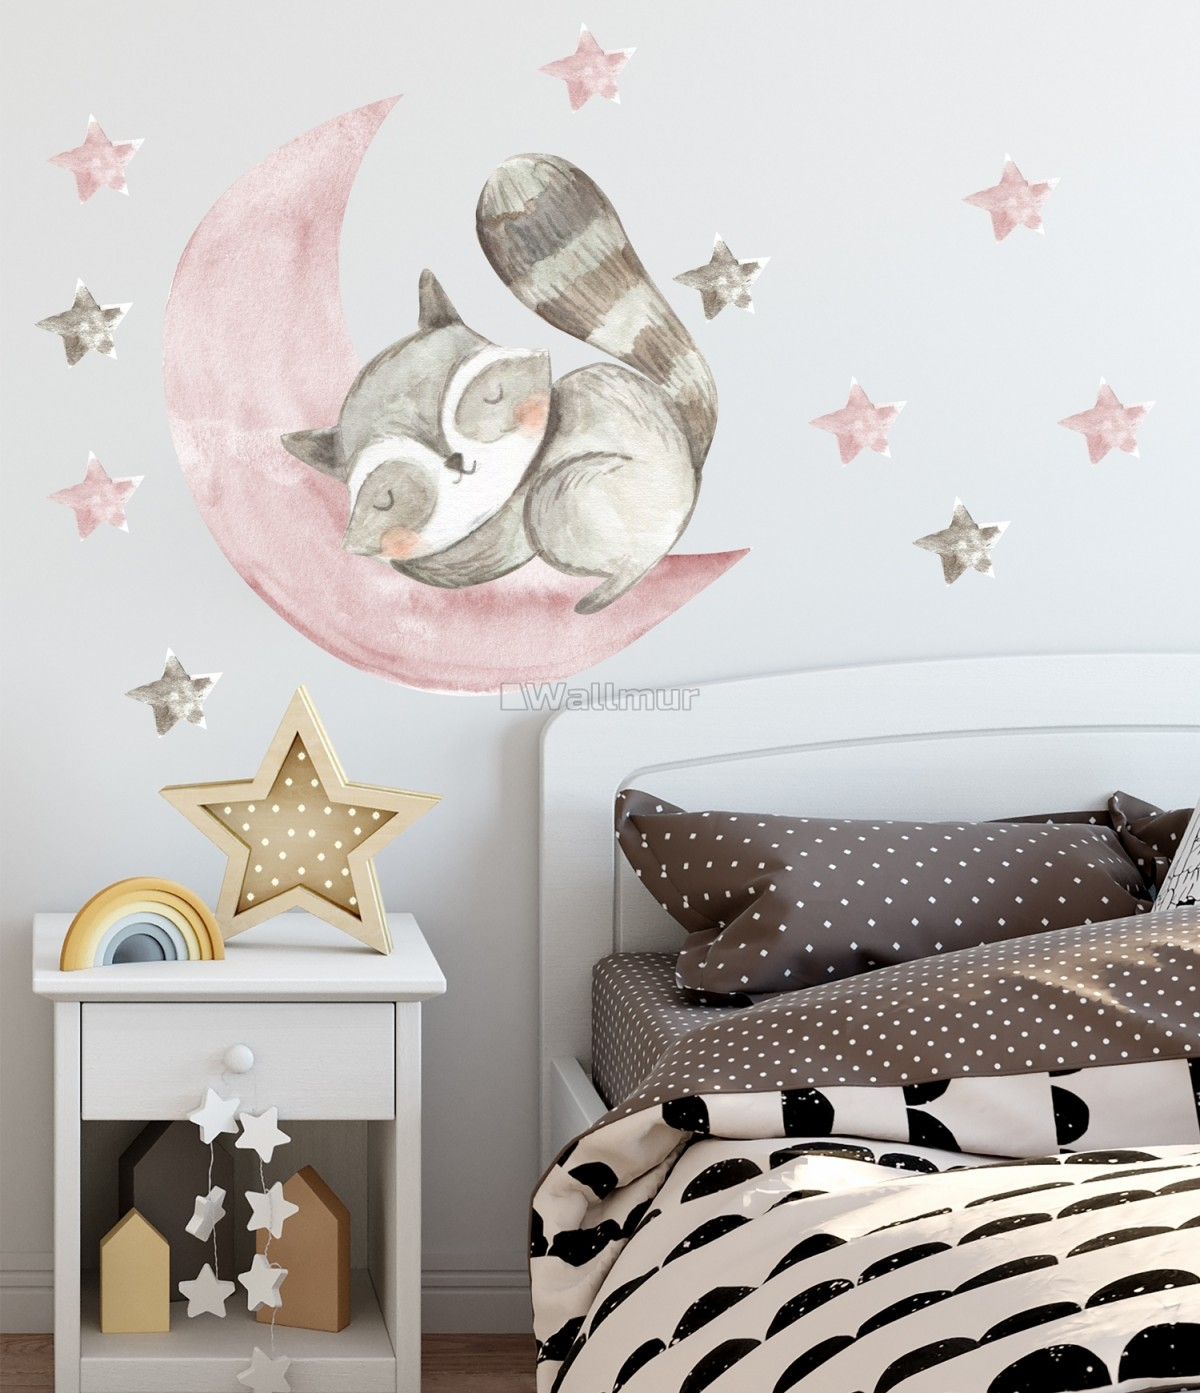 Nursery Cute Raccun and Watercolor Pink Gray Stars Wall Decal Sticker